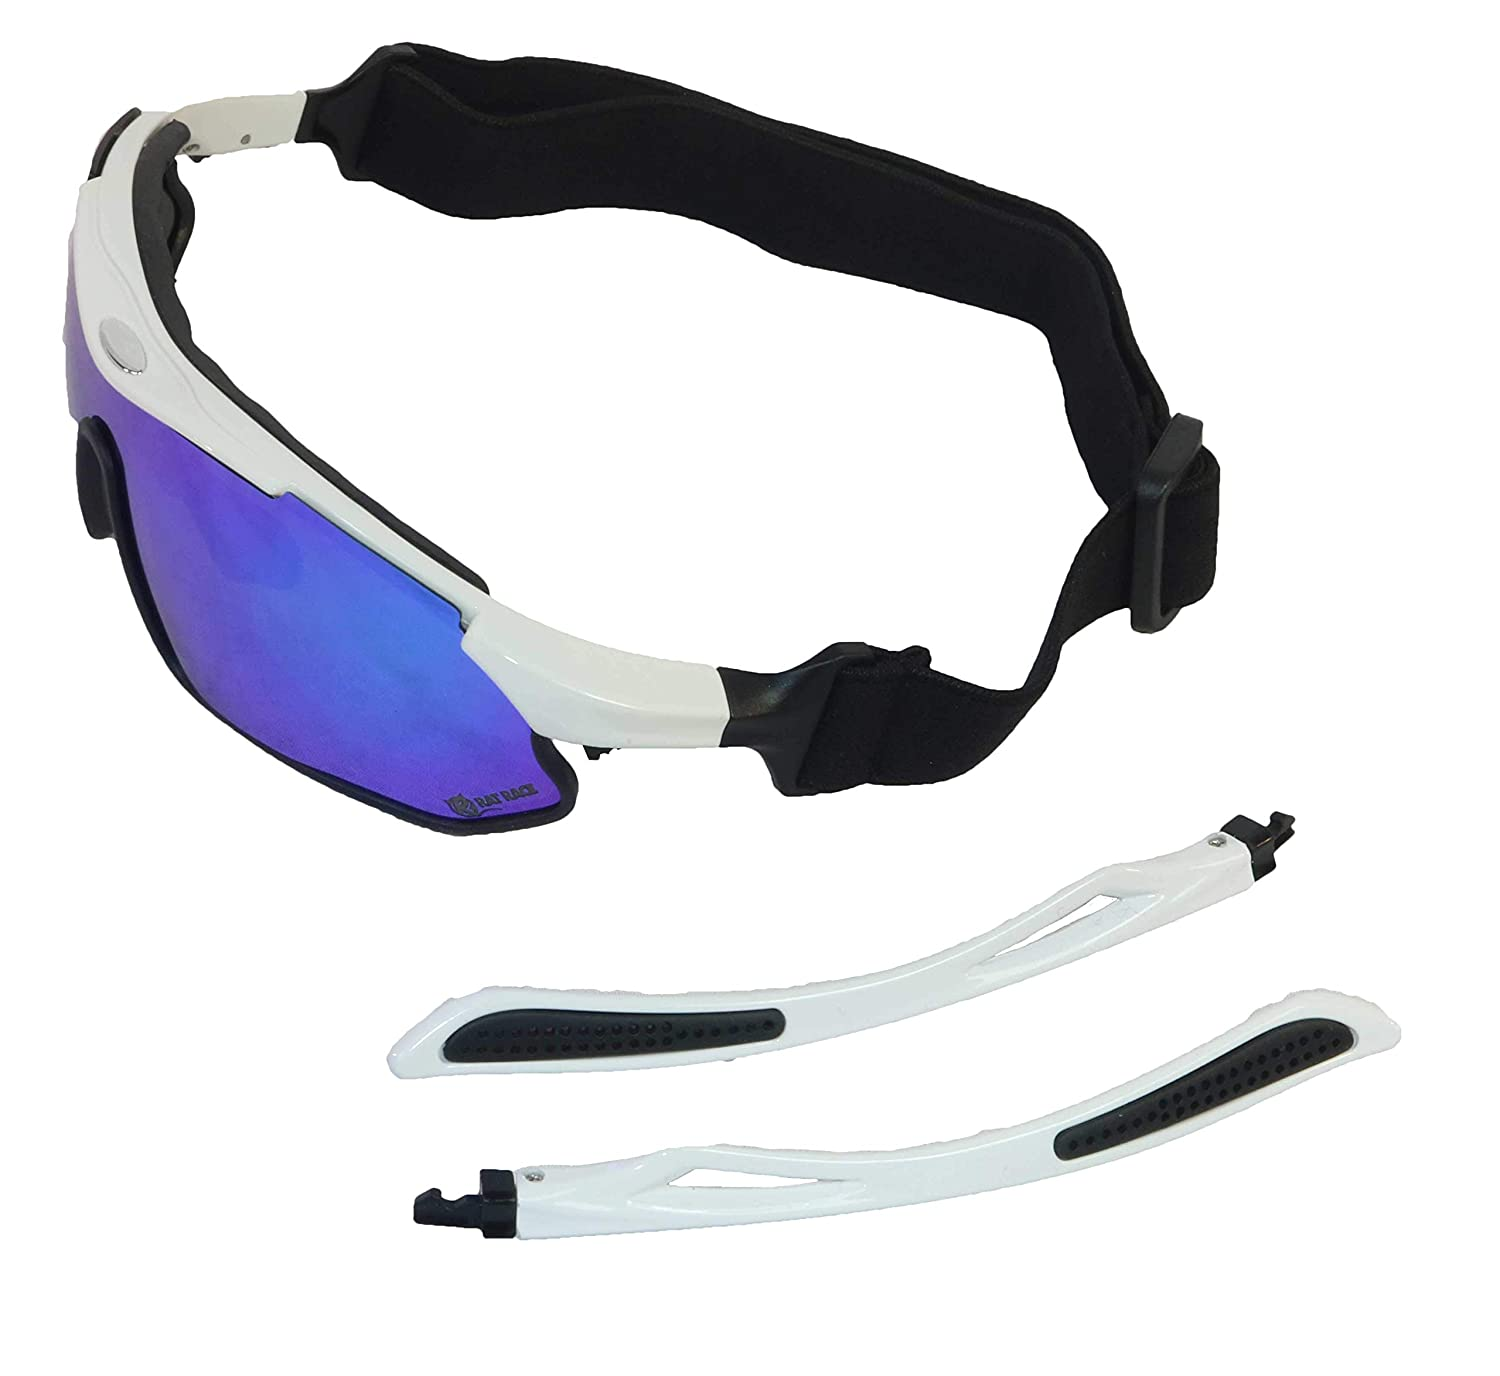 Rat Race Sport Polarised Sunglasses UV Protection Interchangeable lenses Clear Coloured Unisex Mens Womens Fitness Cycling Skiing